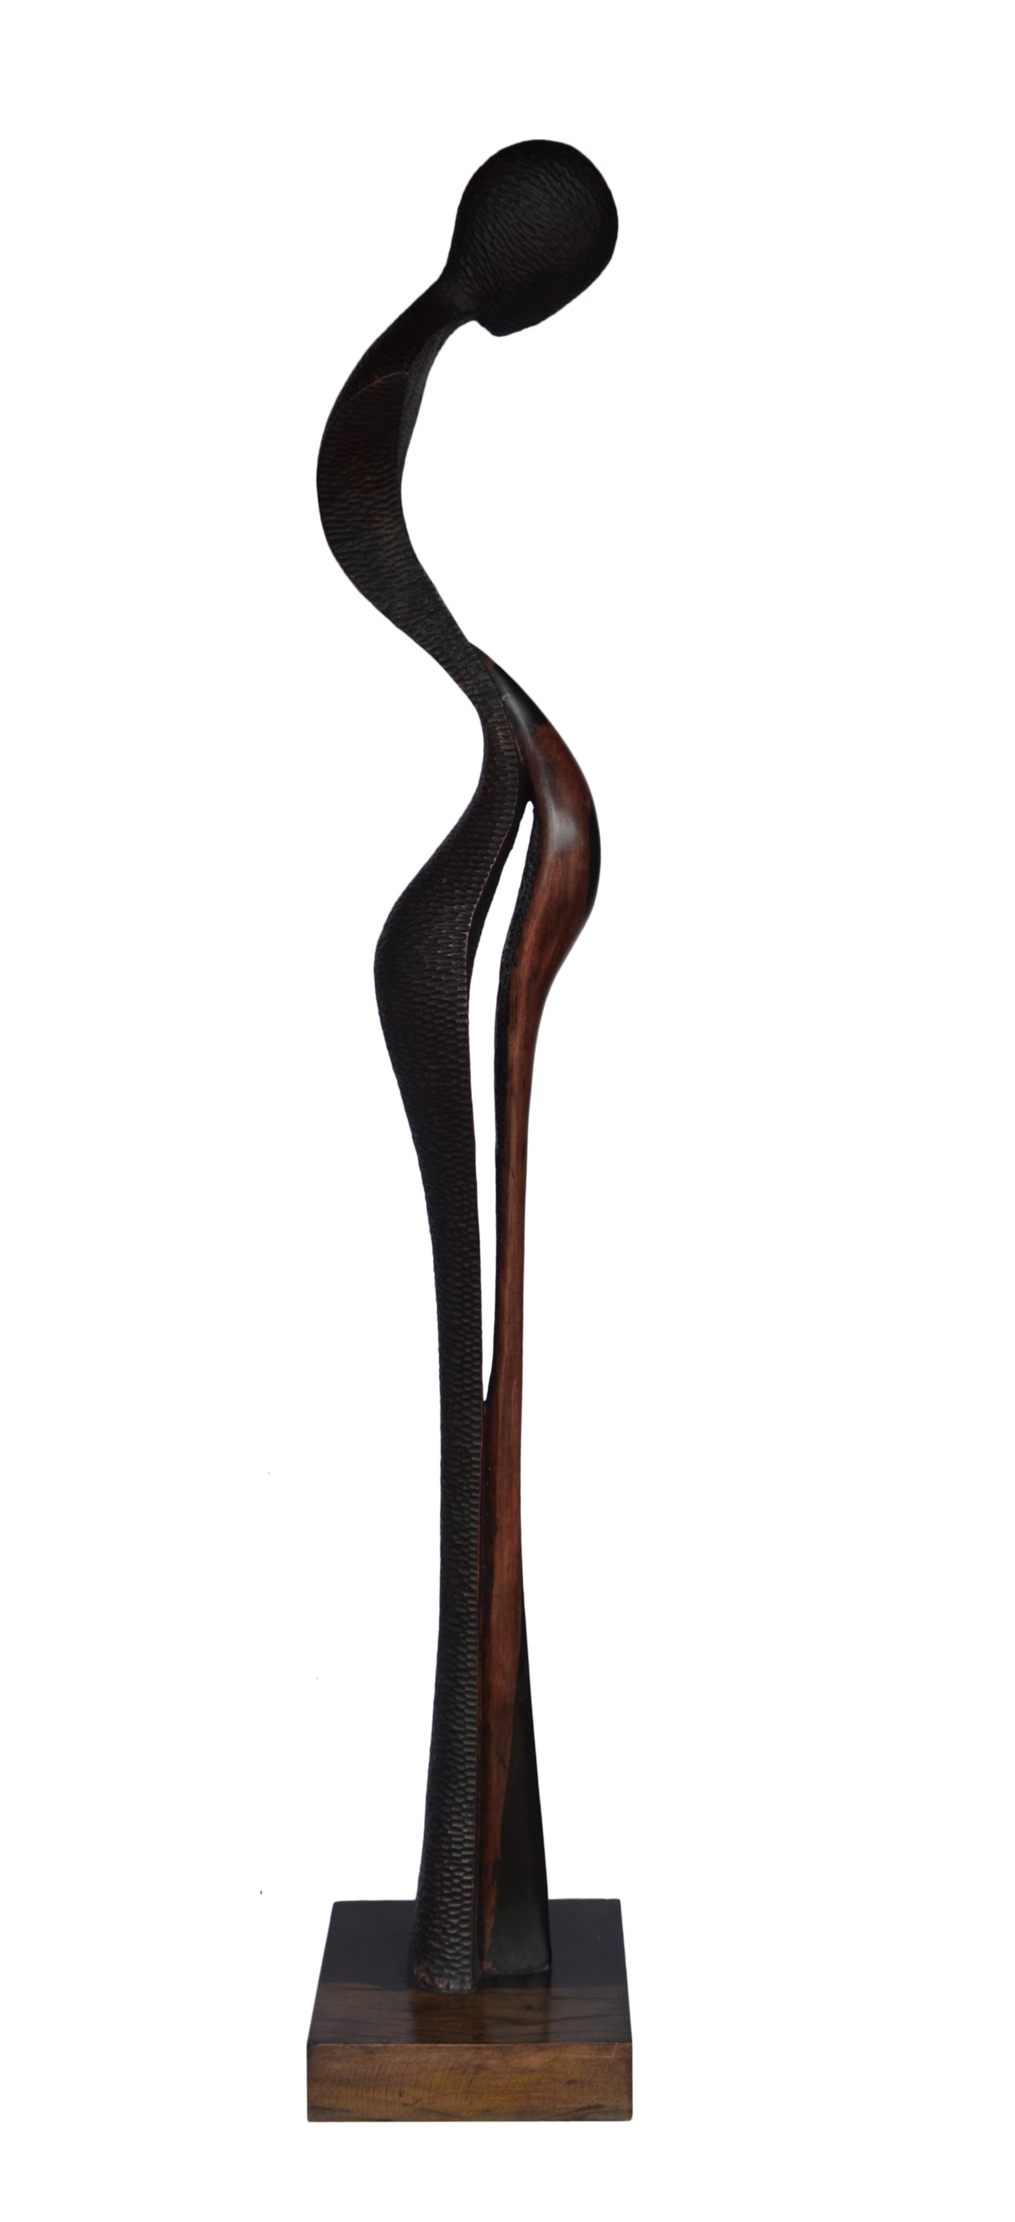 Admiration, 71 Inches, Ebony Wood, 2015 (2)